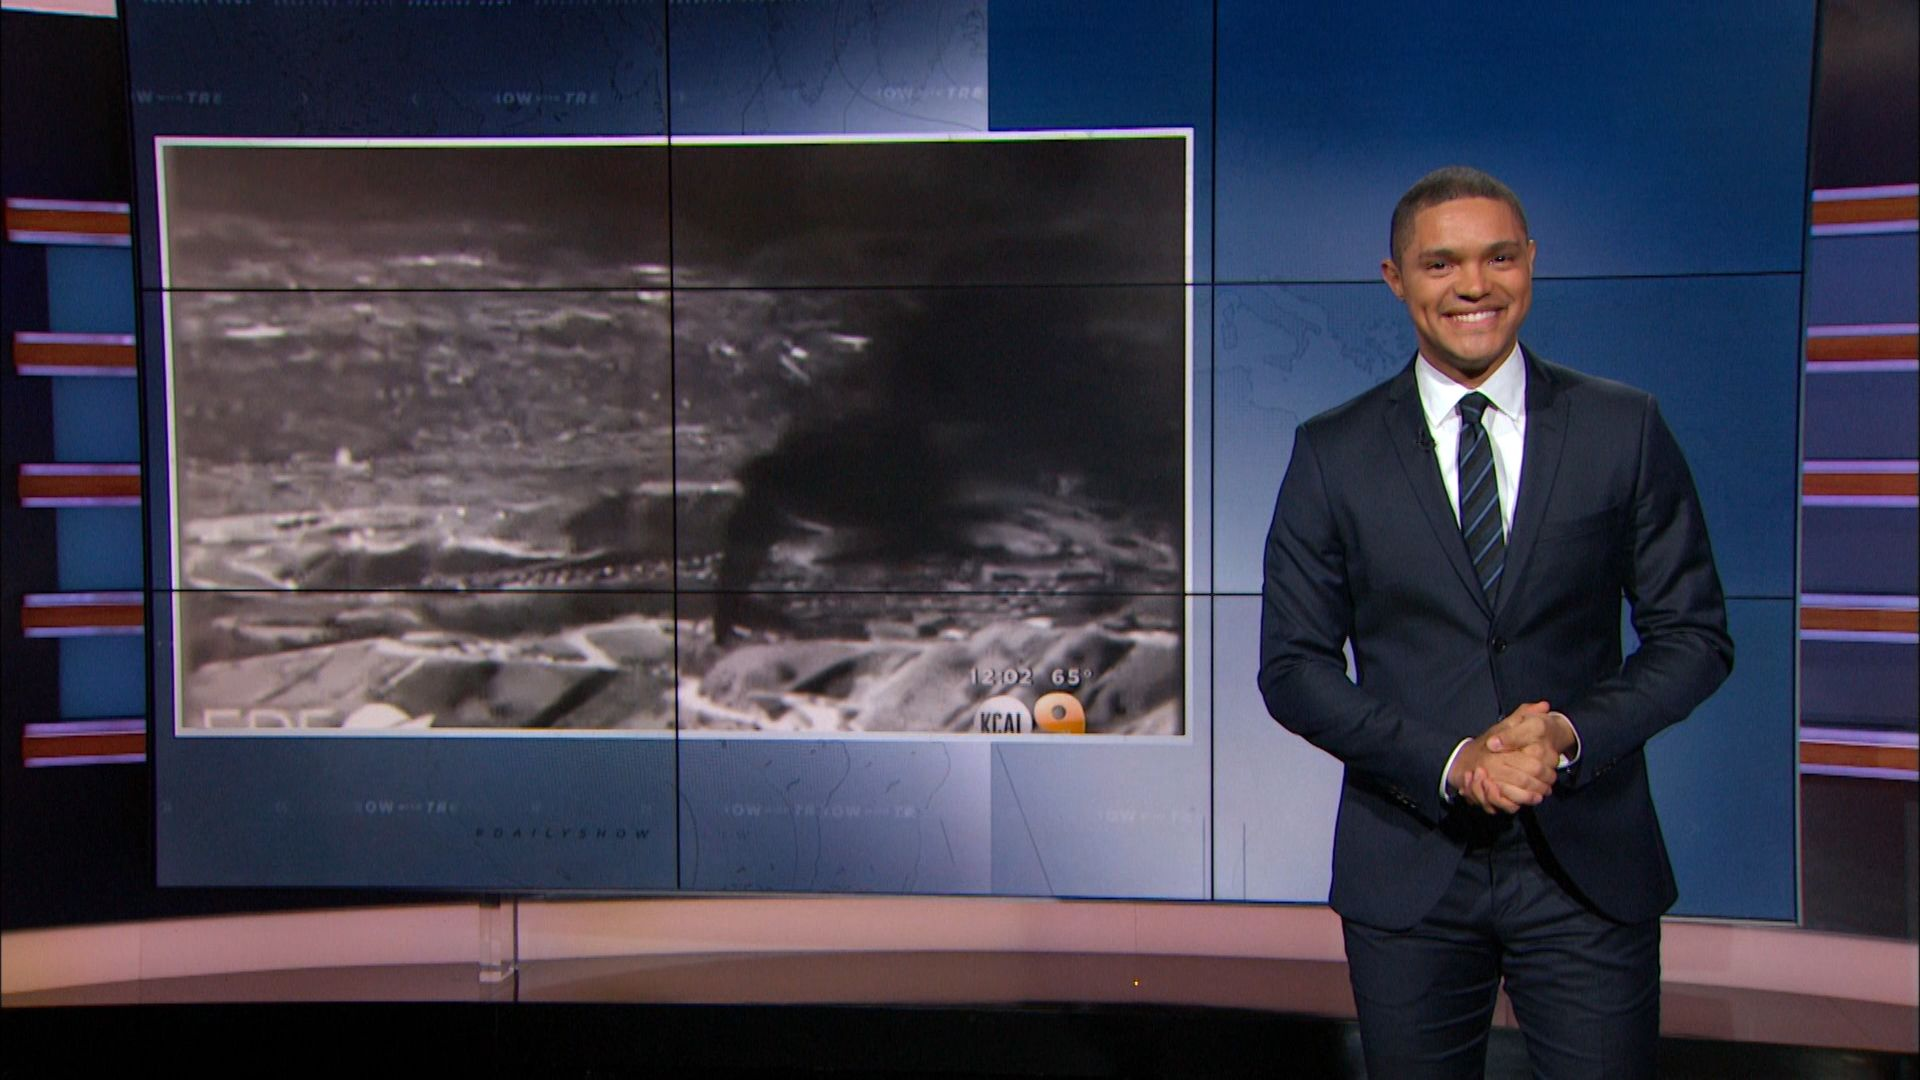 A Methane Emergency in California - The Daily Show with Trevor Noah (Video Clip)